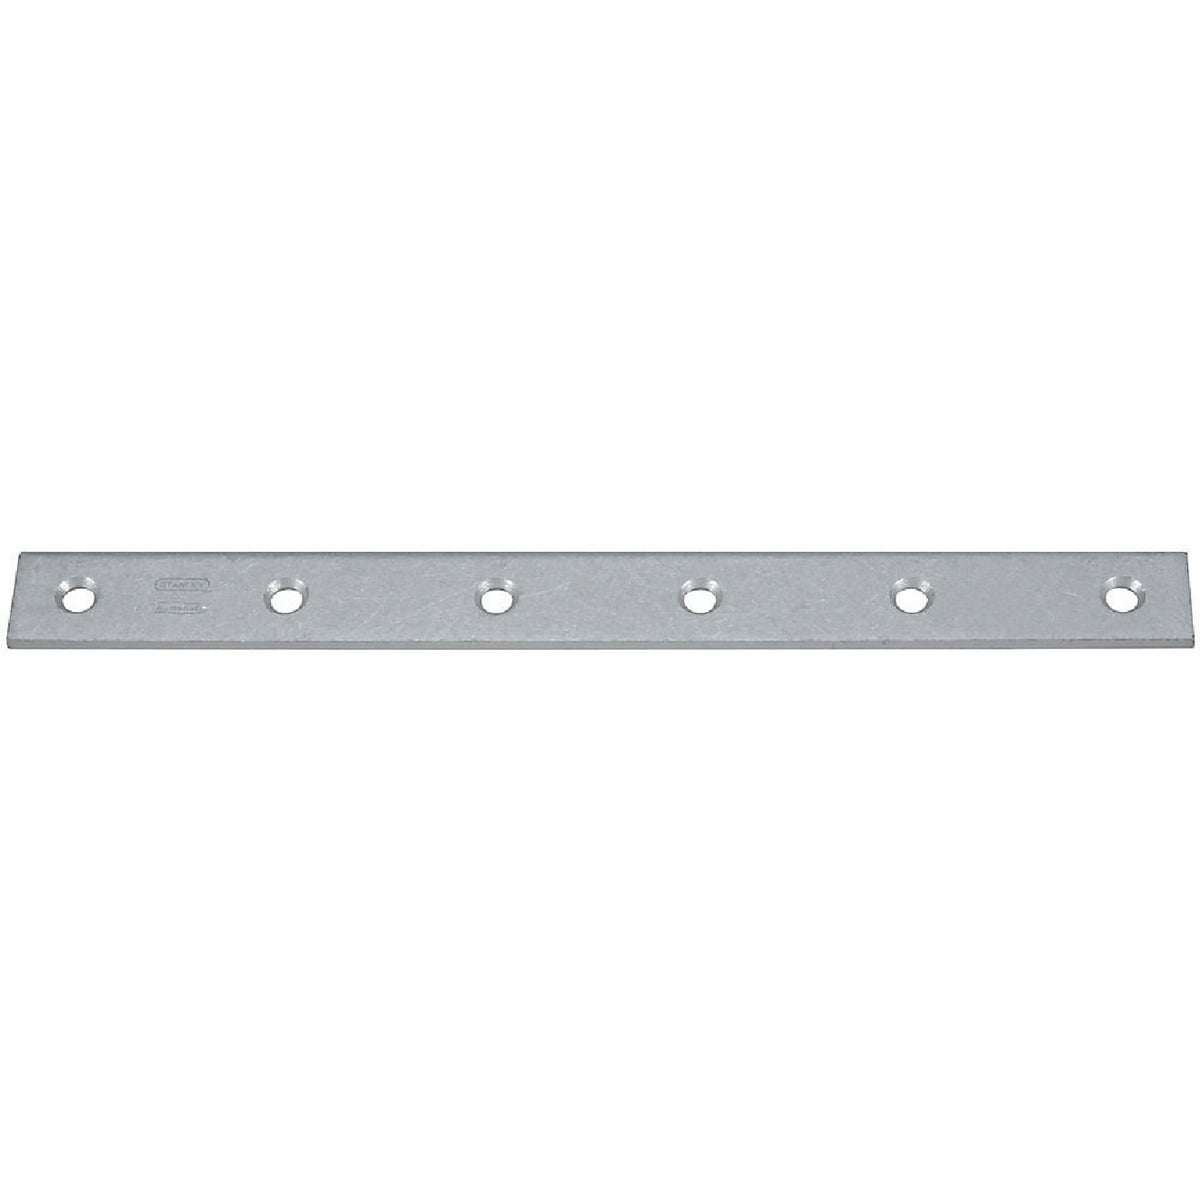 "12"" GALV MENDING BRACE - N220376 by National Mfg Co"